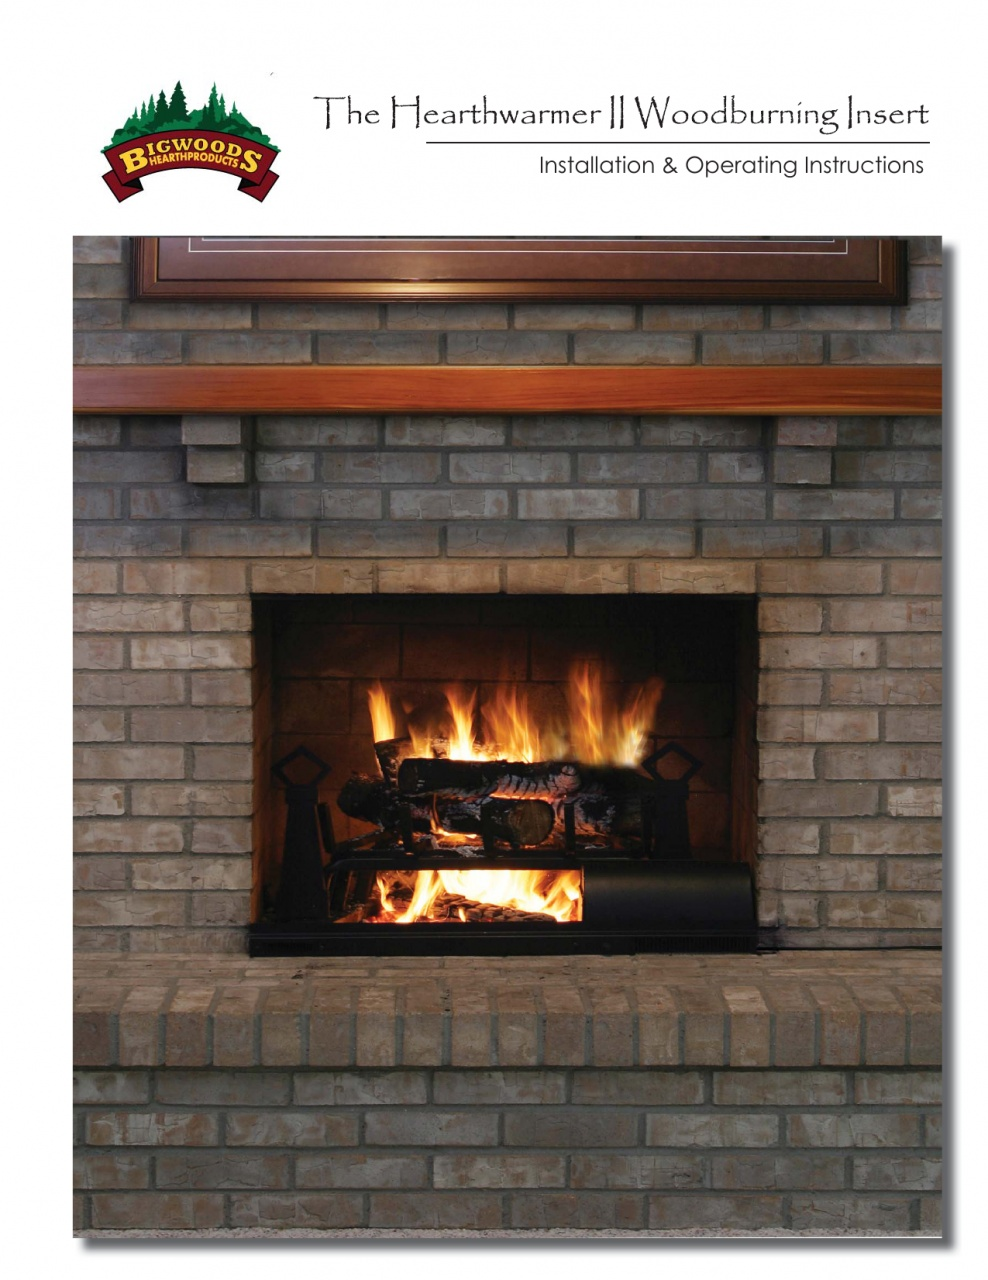 wood burning fireplace heat exchangers installation instructions big woods hearth products from wood burning fireplace heat exchangers